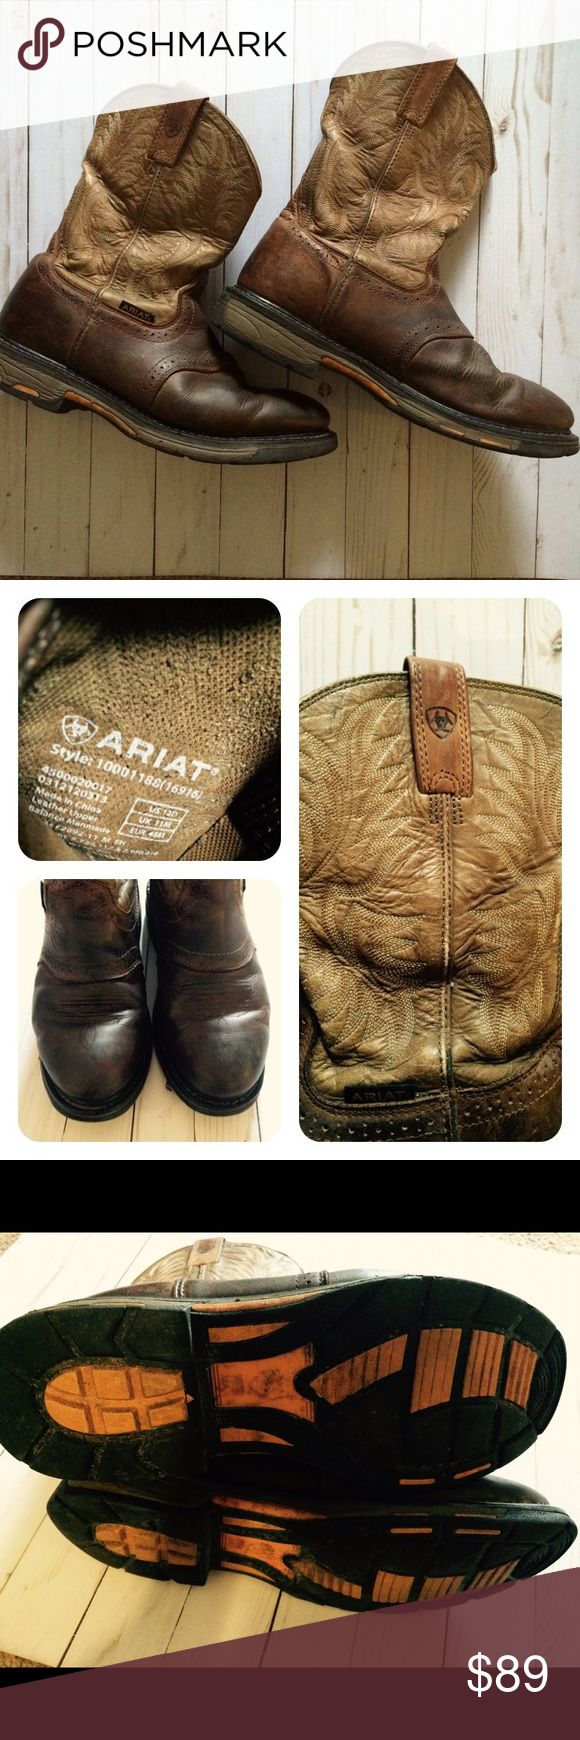 Men's Ariat Working H2O Workhog Work Boots Round toe. Previously worn and show signs of wear. Please see pictures. Size 12D Ariat Shoes Boots